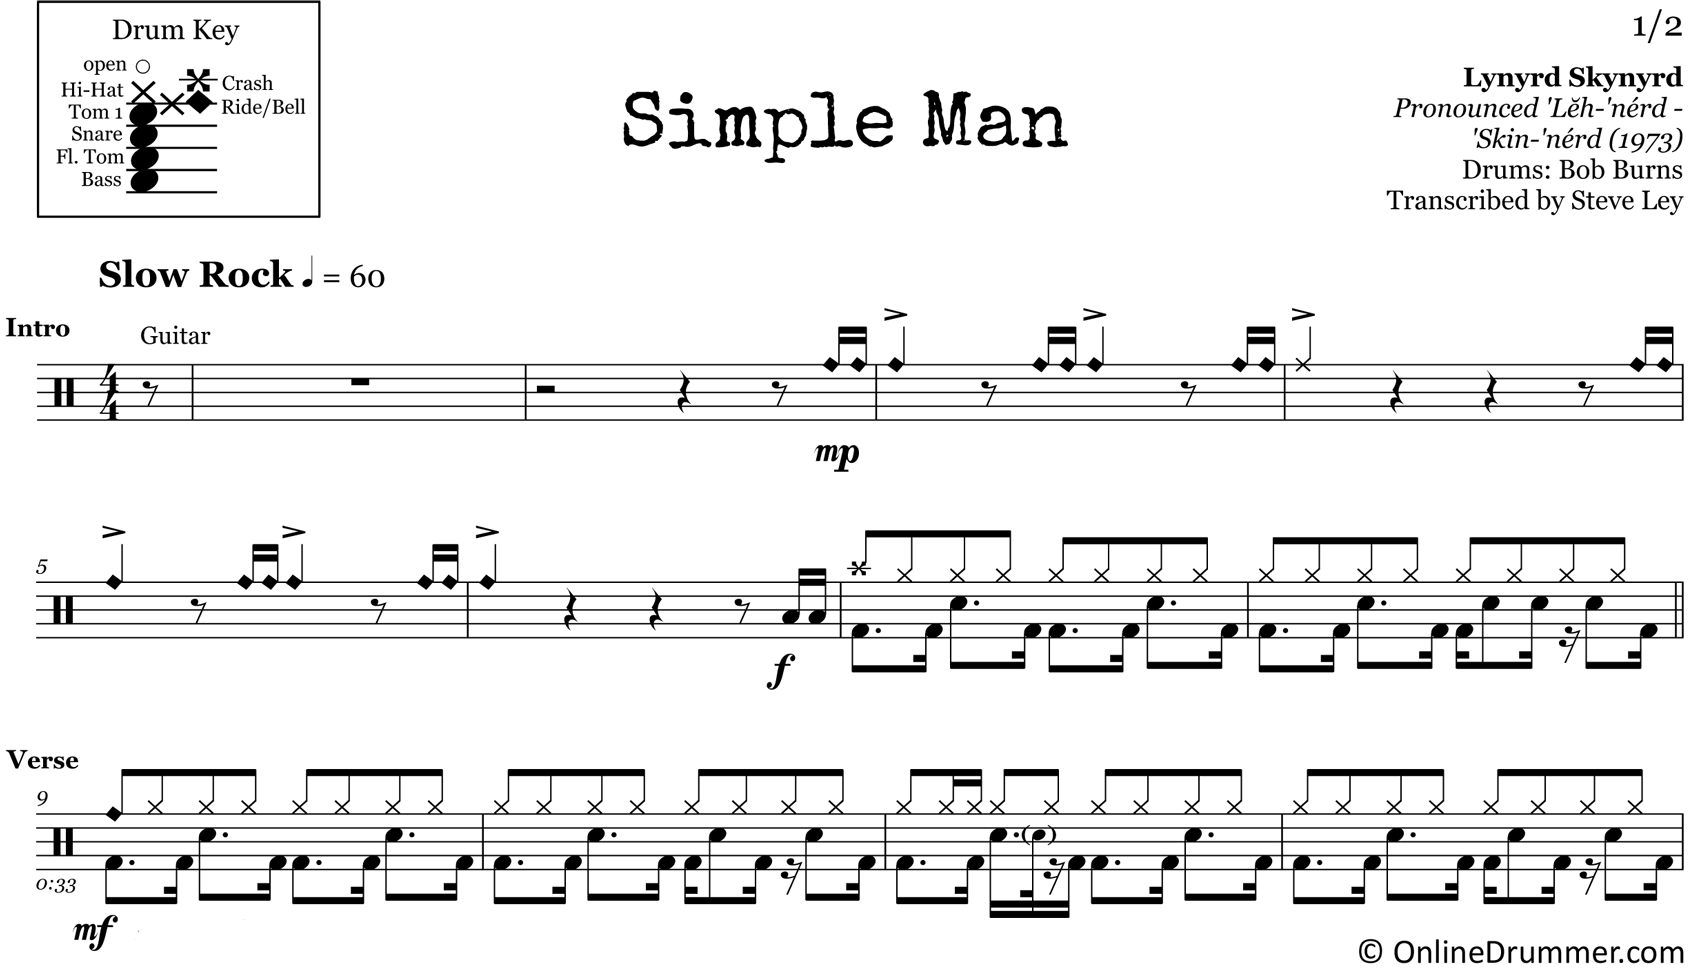 Simple Man - Lynryd Skynryd - Drum Sheet Music